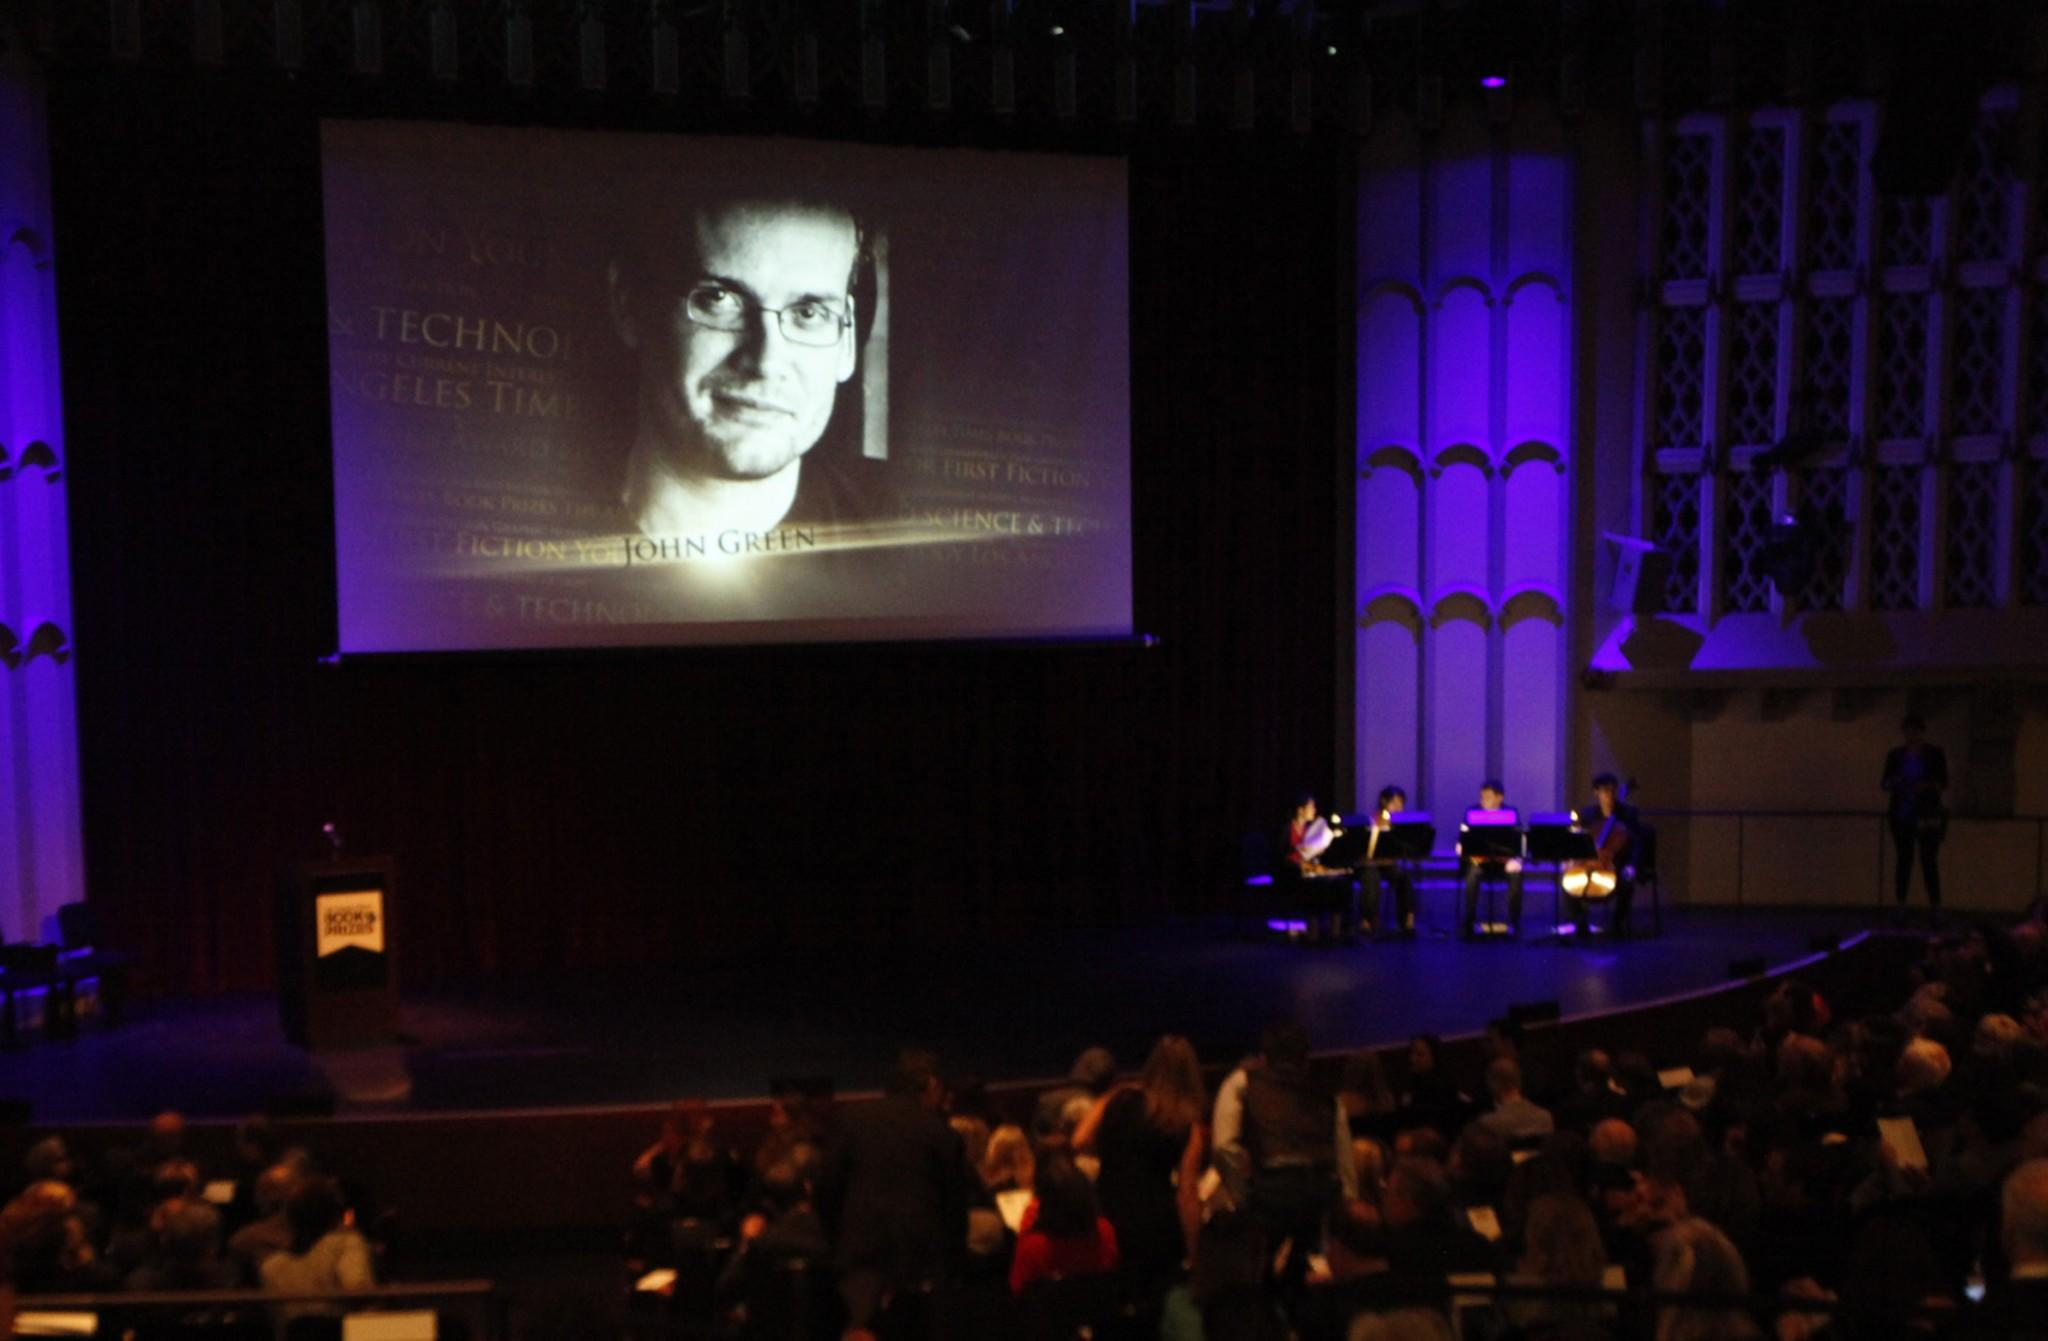 The image of author John Green is projected on the screen at the start of the 34th Annual Los Angeles Times Book Prizes event at USC.